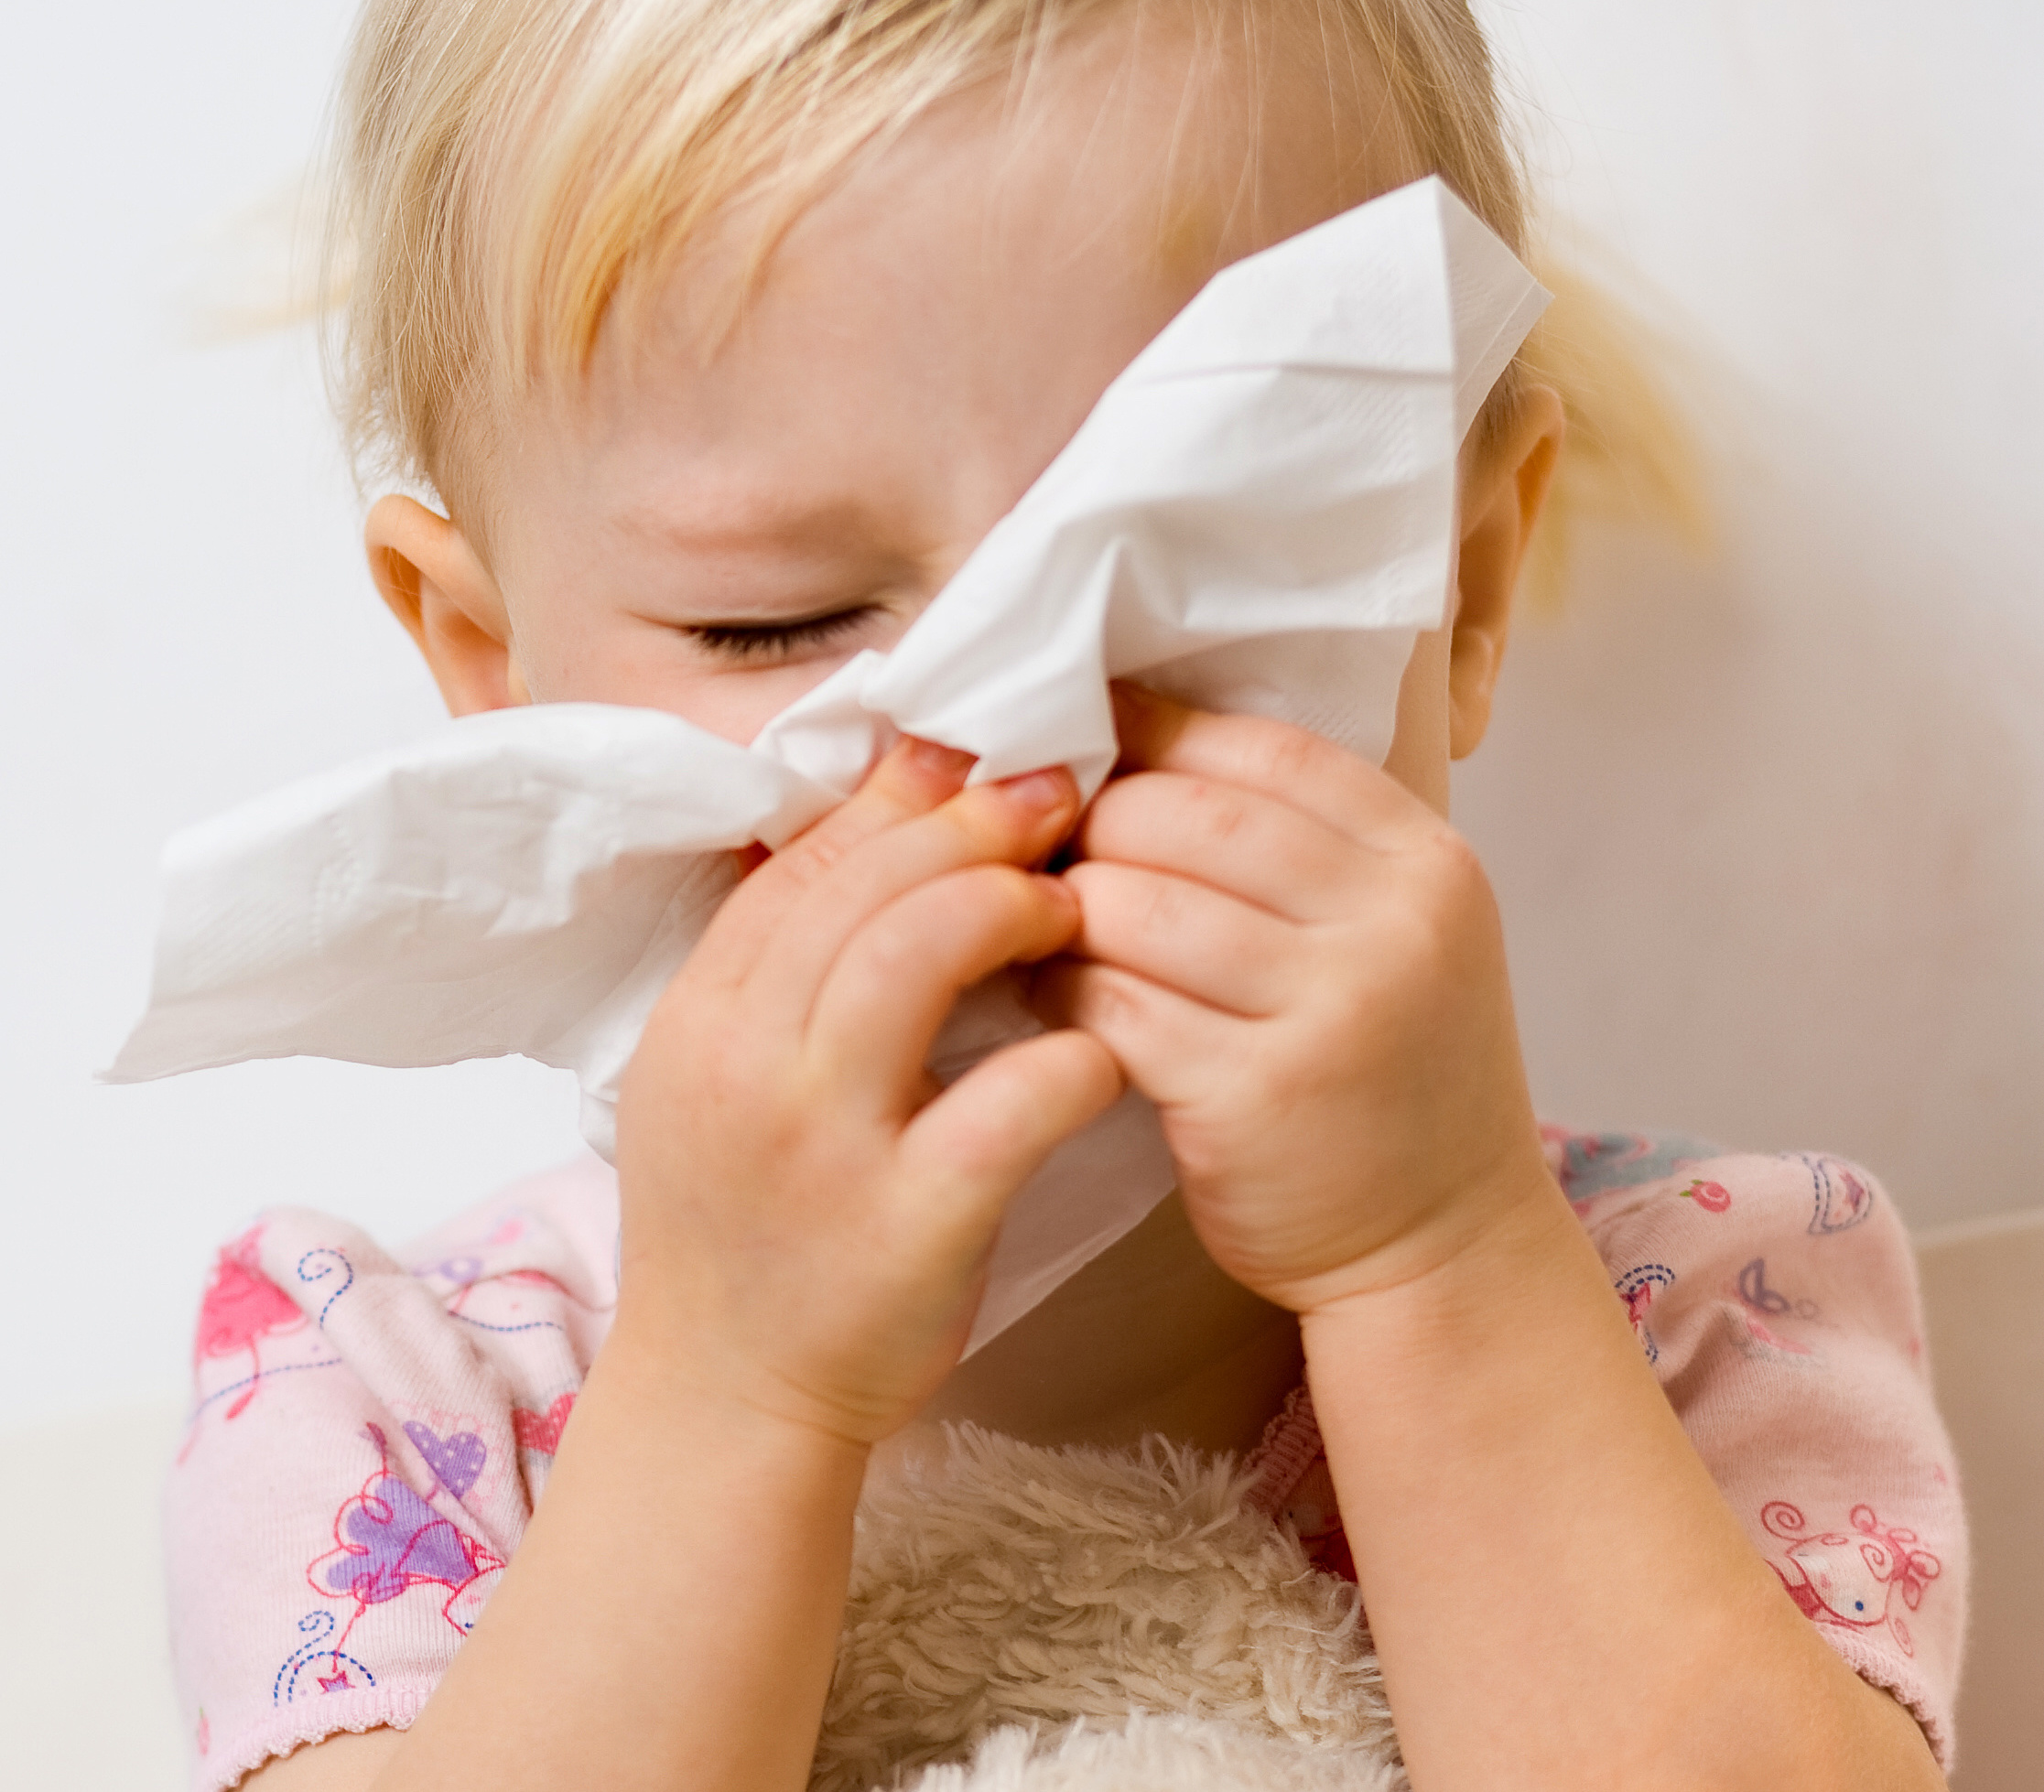 Little girl blows her nose into a tissue